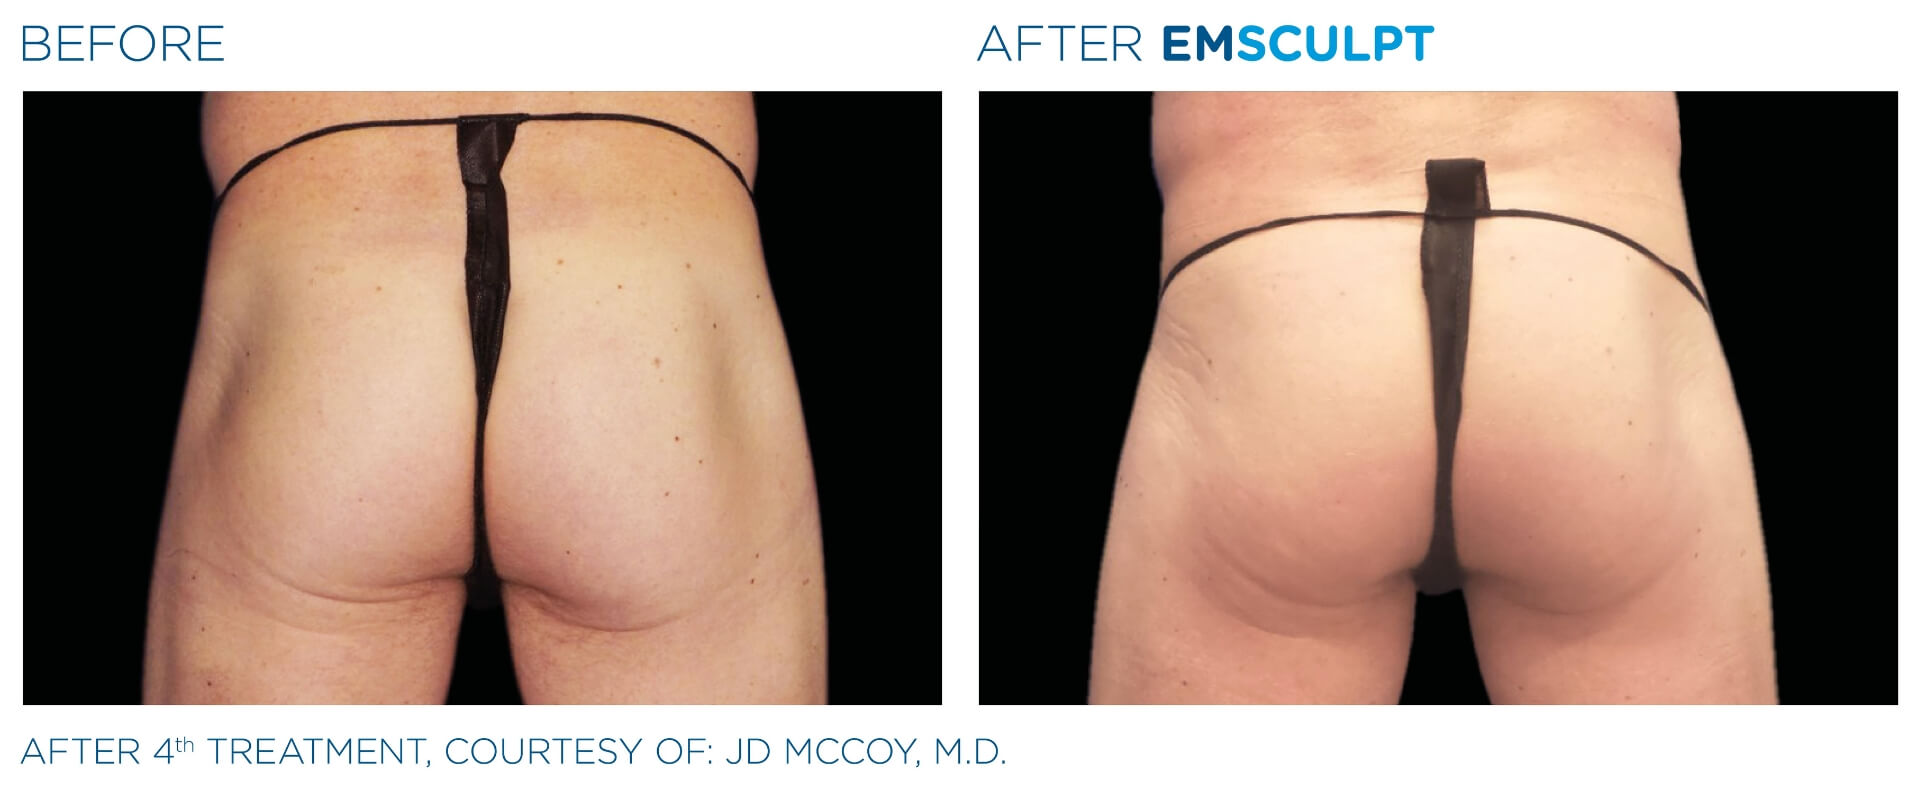 emsculpt before and after male buttock the sophia medspa in sudbury, ma